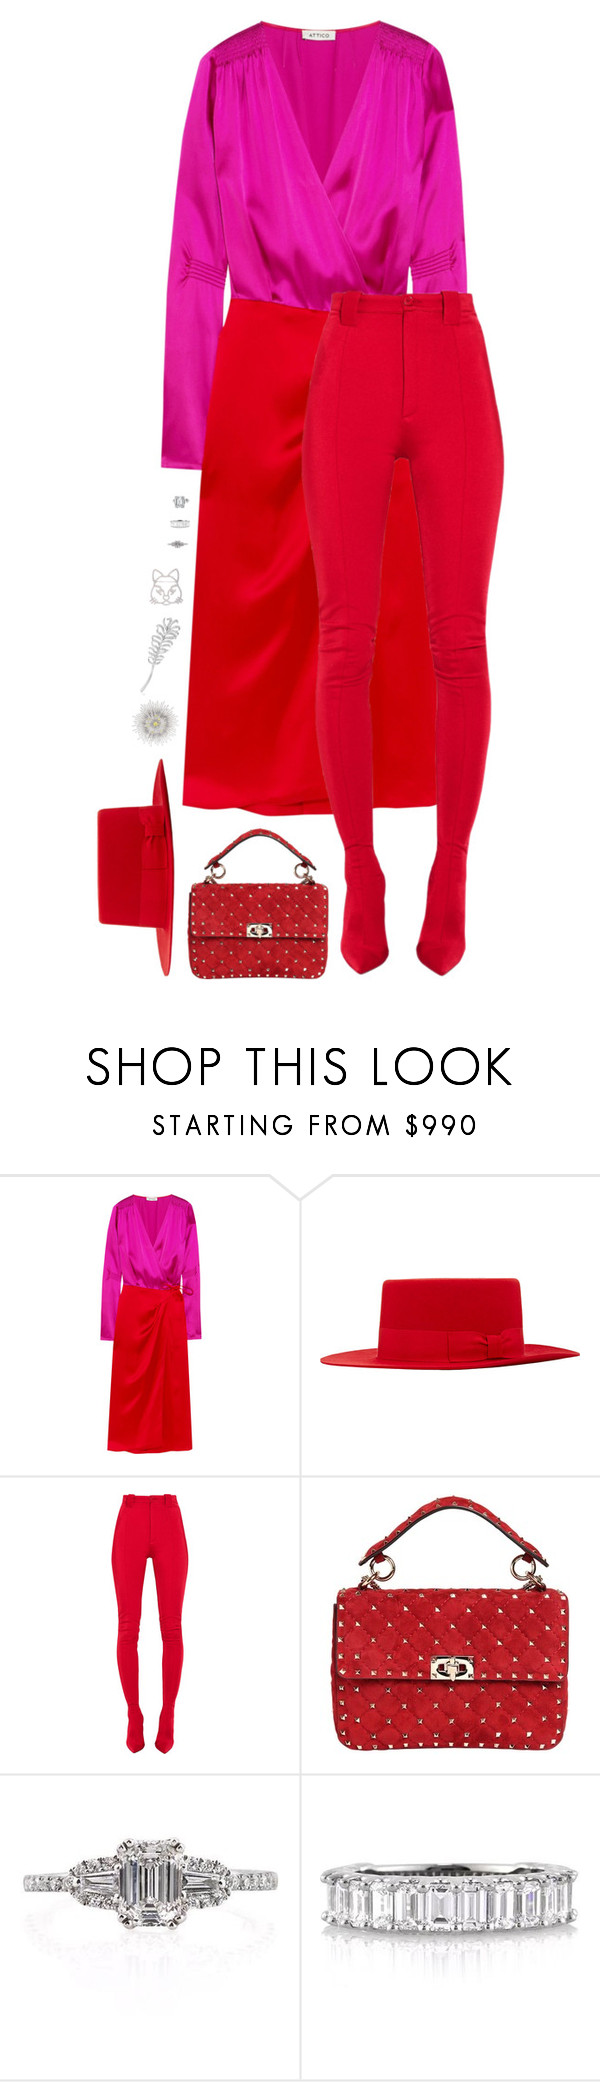 """""""Monochromatic look with red and pink dress"""" by hugovrcl ❤ liked on Polyvore featuring Attico, Yves Saint Laurent, Balenciaga, Valentino, Chanel and Mark Broumand"""